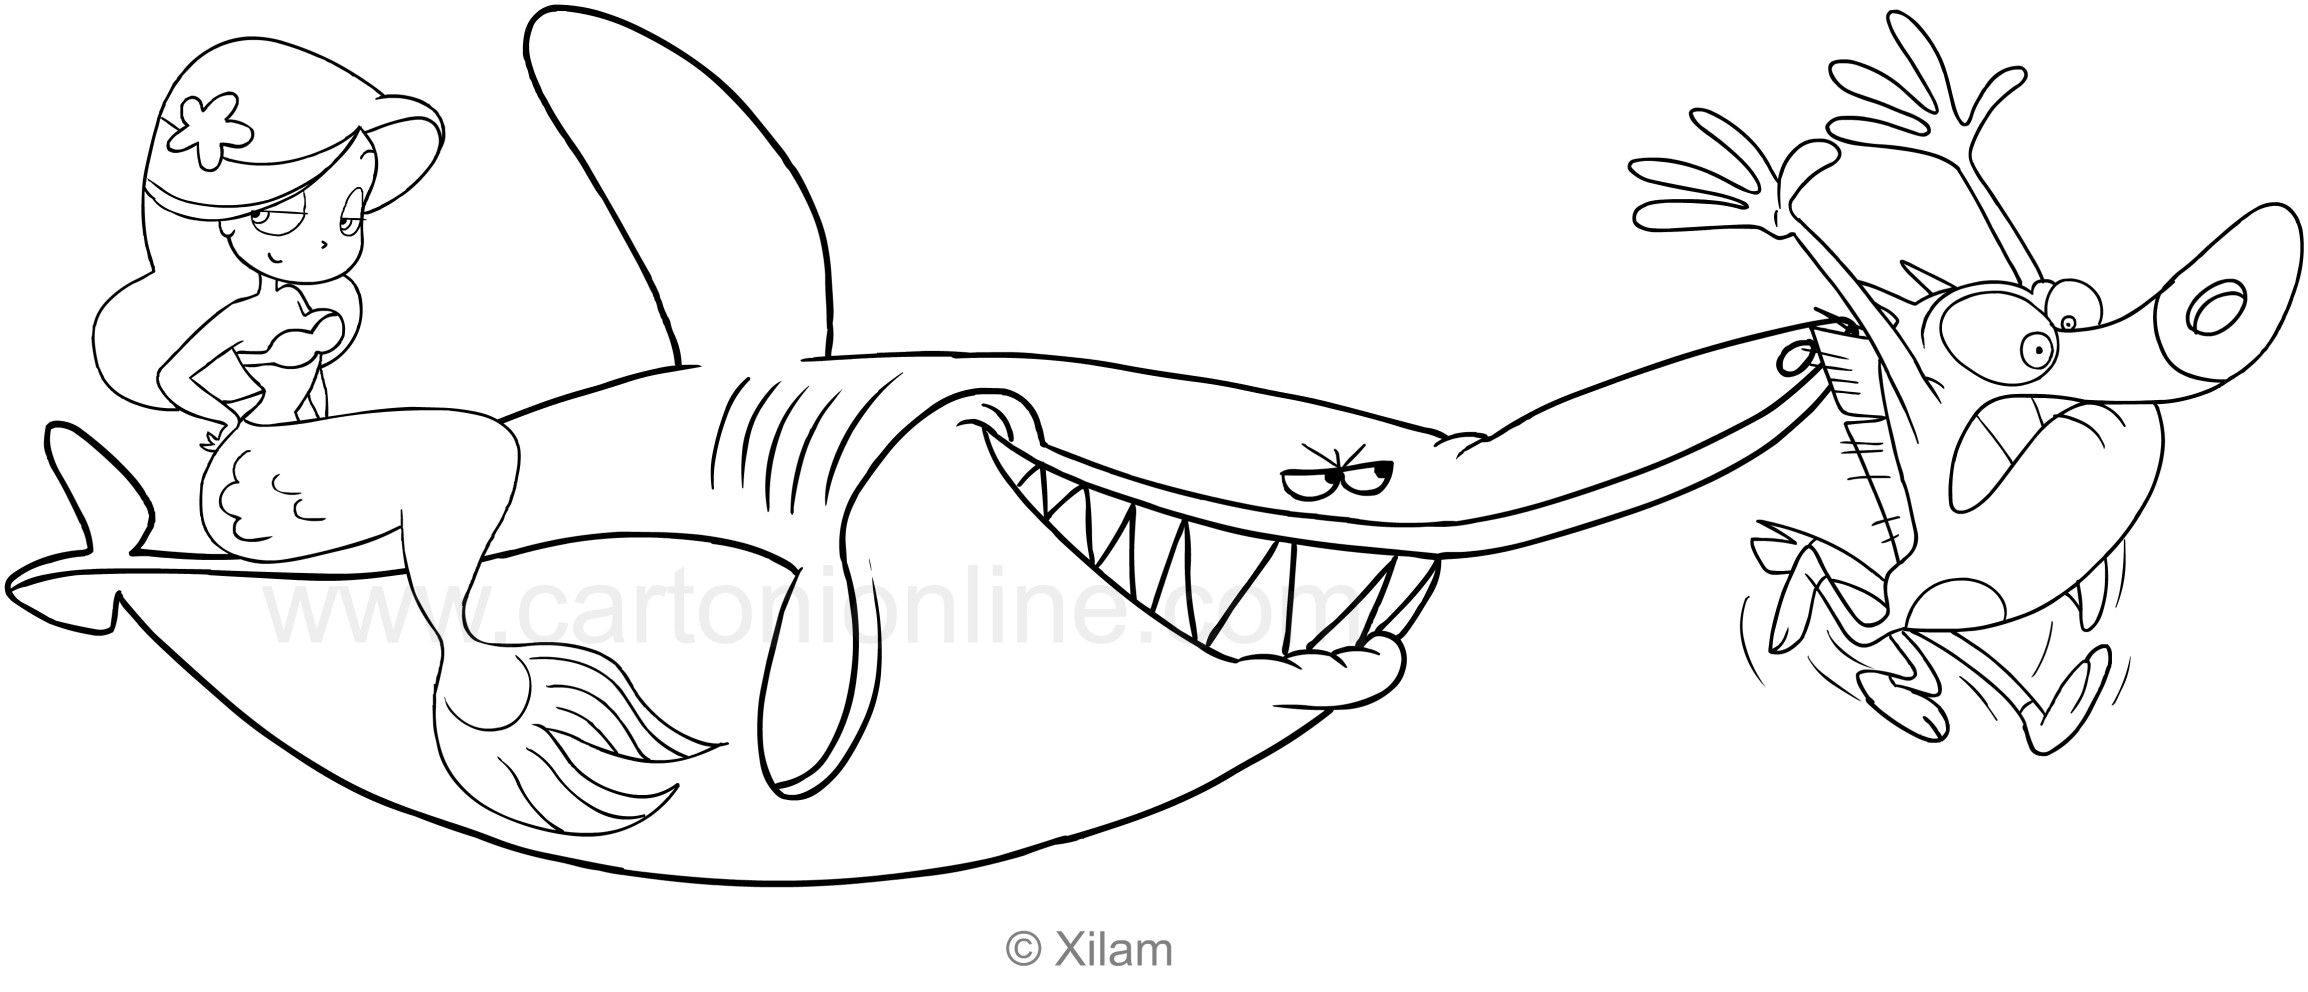 Sharko Coloring Pages Google Search Coloring Pages Zoo Coloring Pages Puppy Coloring Pages